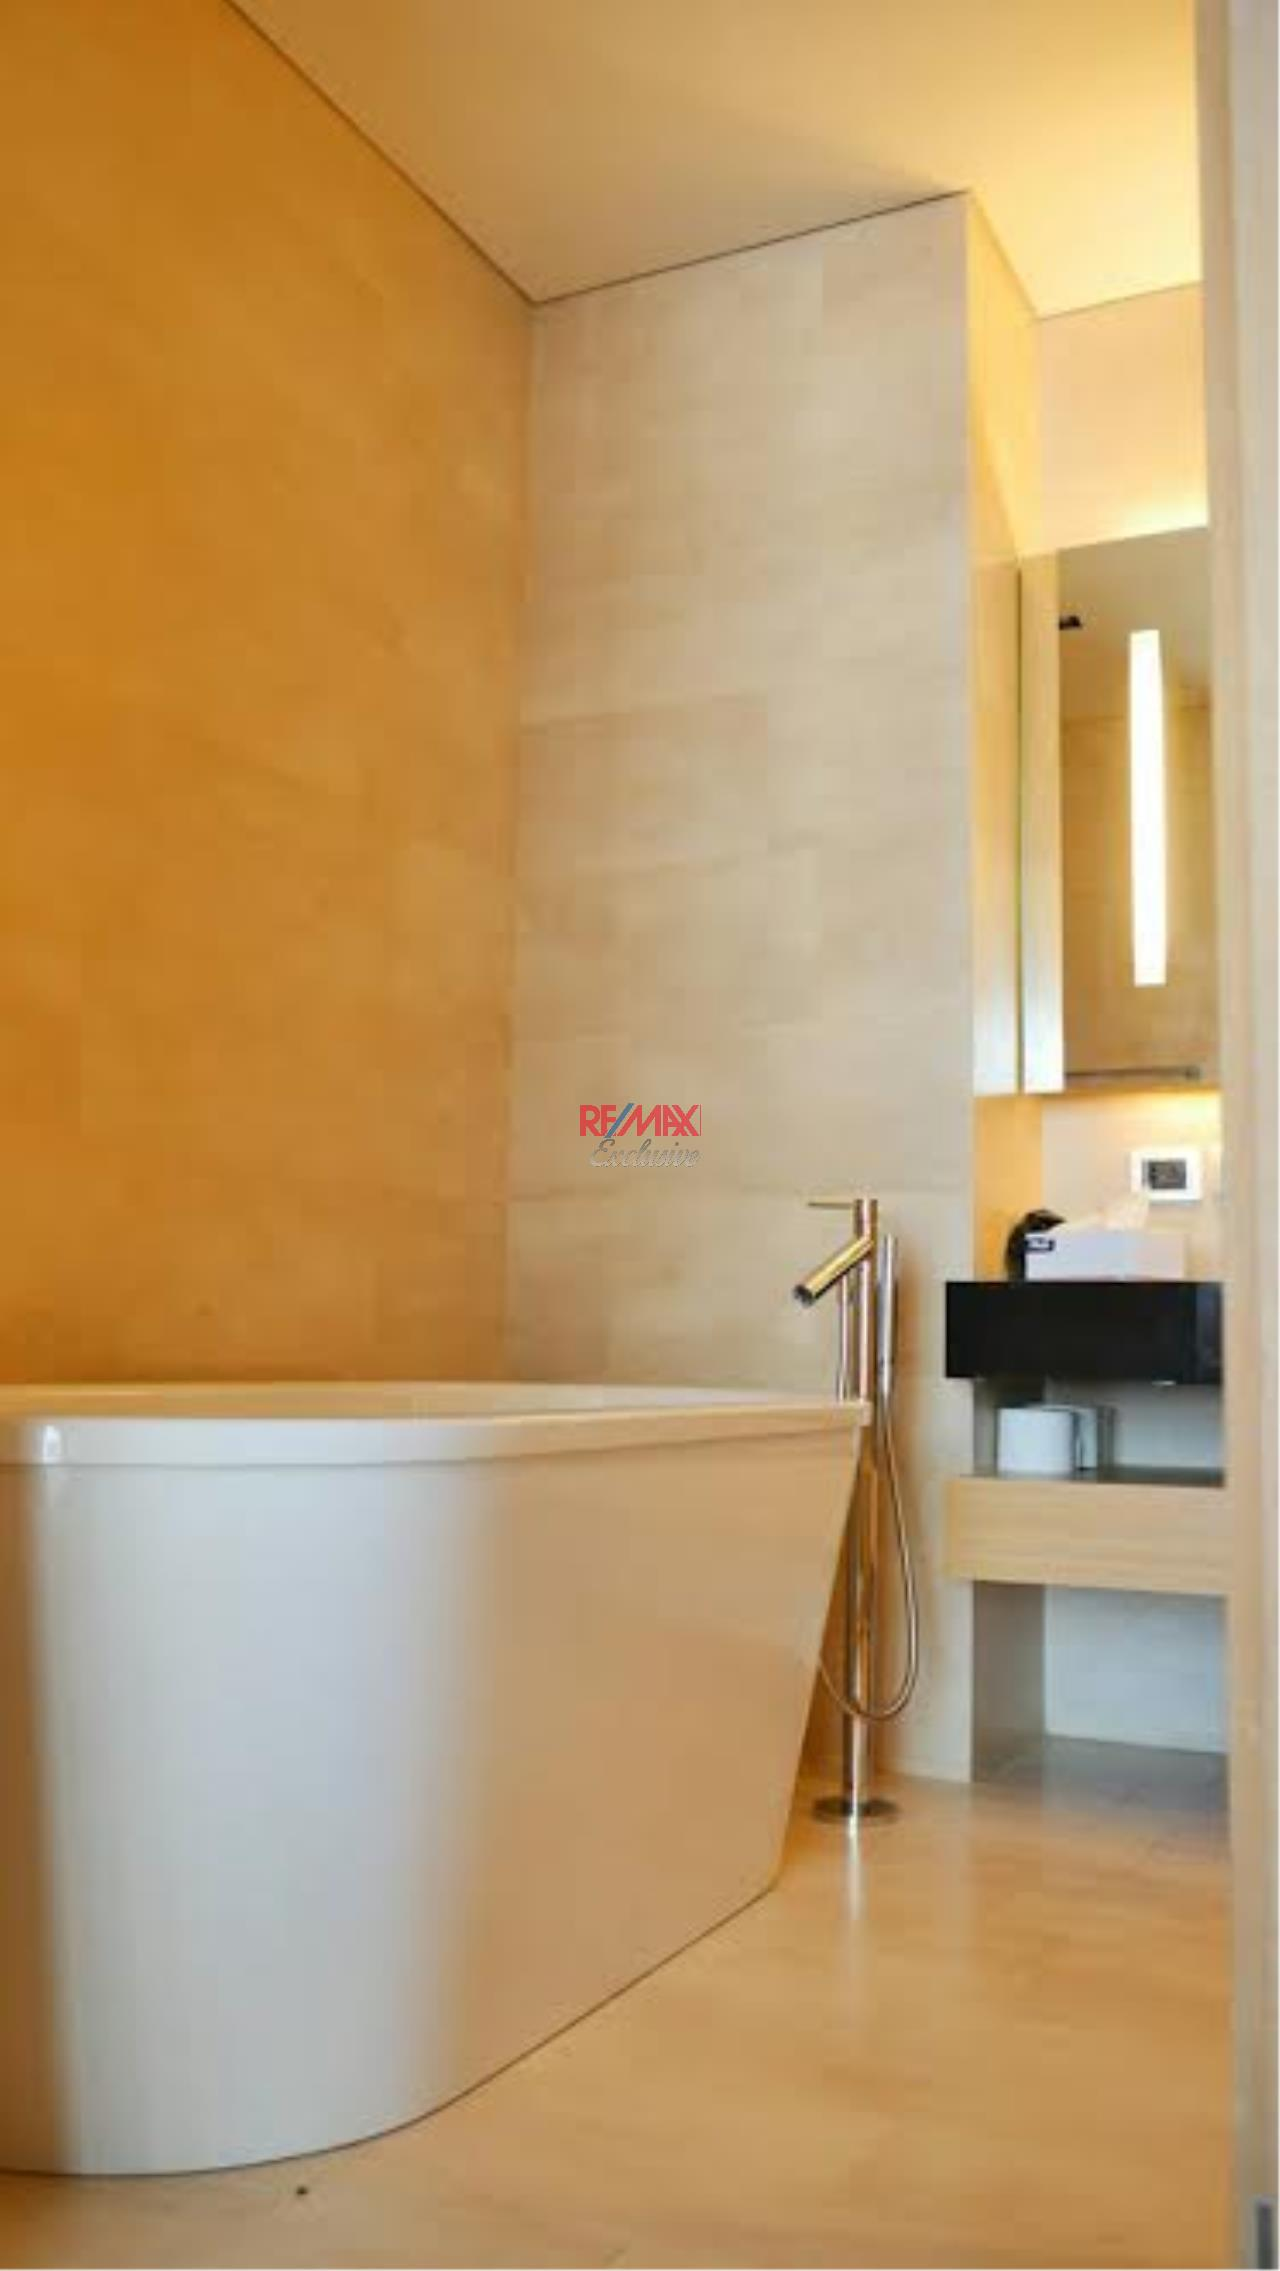 RE/MAX Exclusive Agency's Saladaeng Residence 2 Bedrooms, 2 Bathrooms, For Rent Only 75,000 THB 7